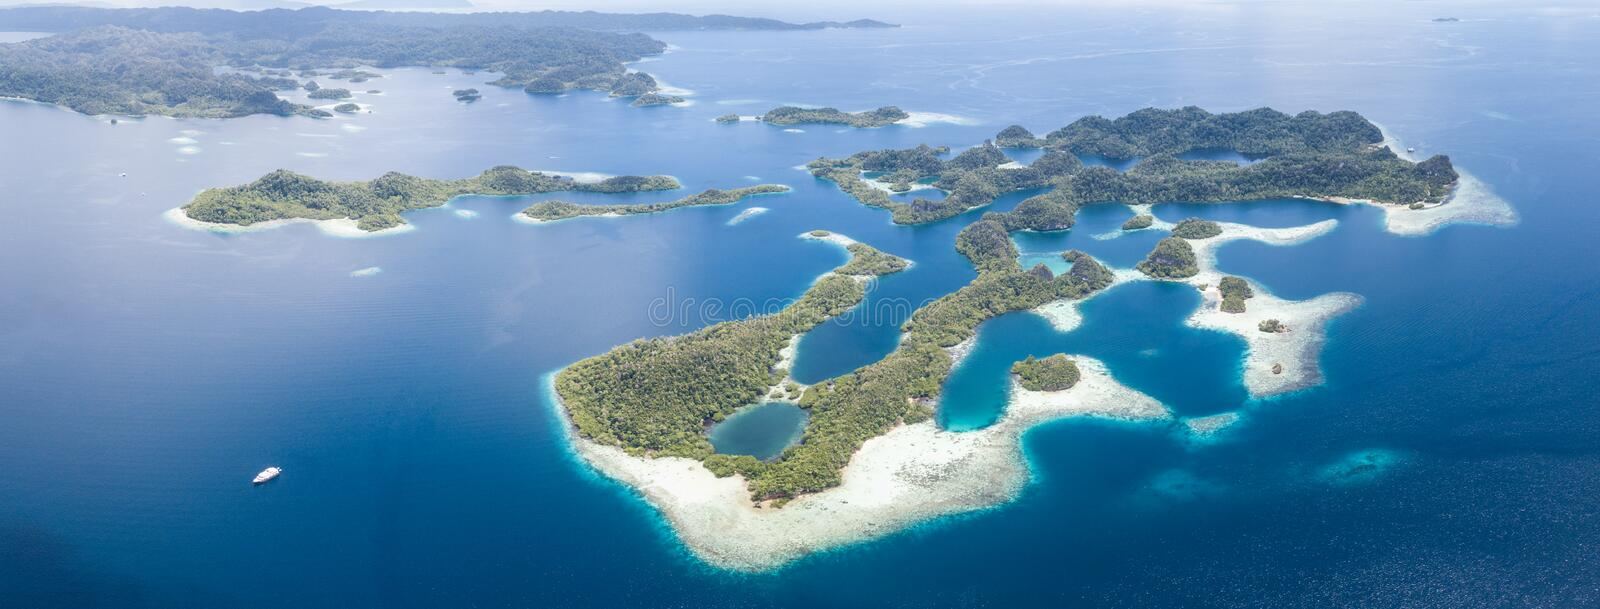 Aerial View of Idyllic Tropical Islands in Raja Ampat. The beautiful tropical islands of Pef are surrounded by calm seas in the equatorial seascape of Raja Ampat royalty free stock photo